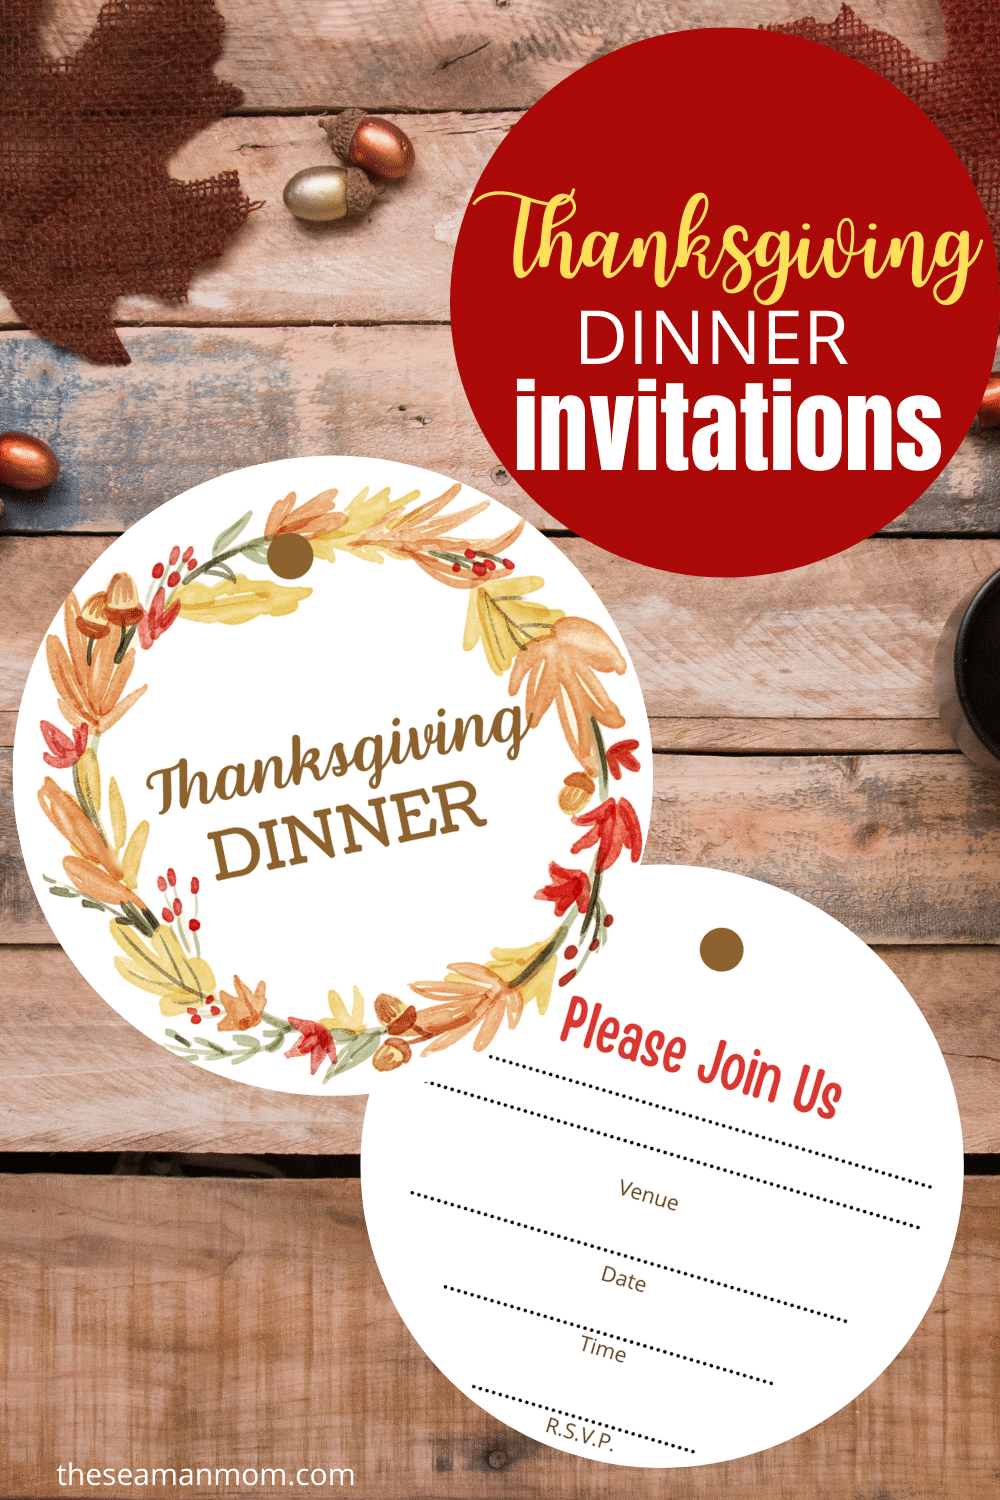 Get your guests excited for a delicious Thanksgiving dinner with these free Thanksgiving invitations! Grab the file and use it to create an invite that will make them want to come! via @petroneagu